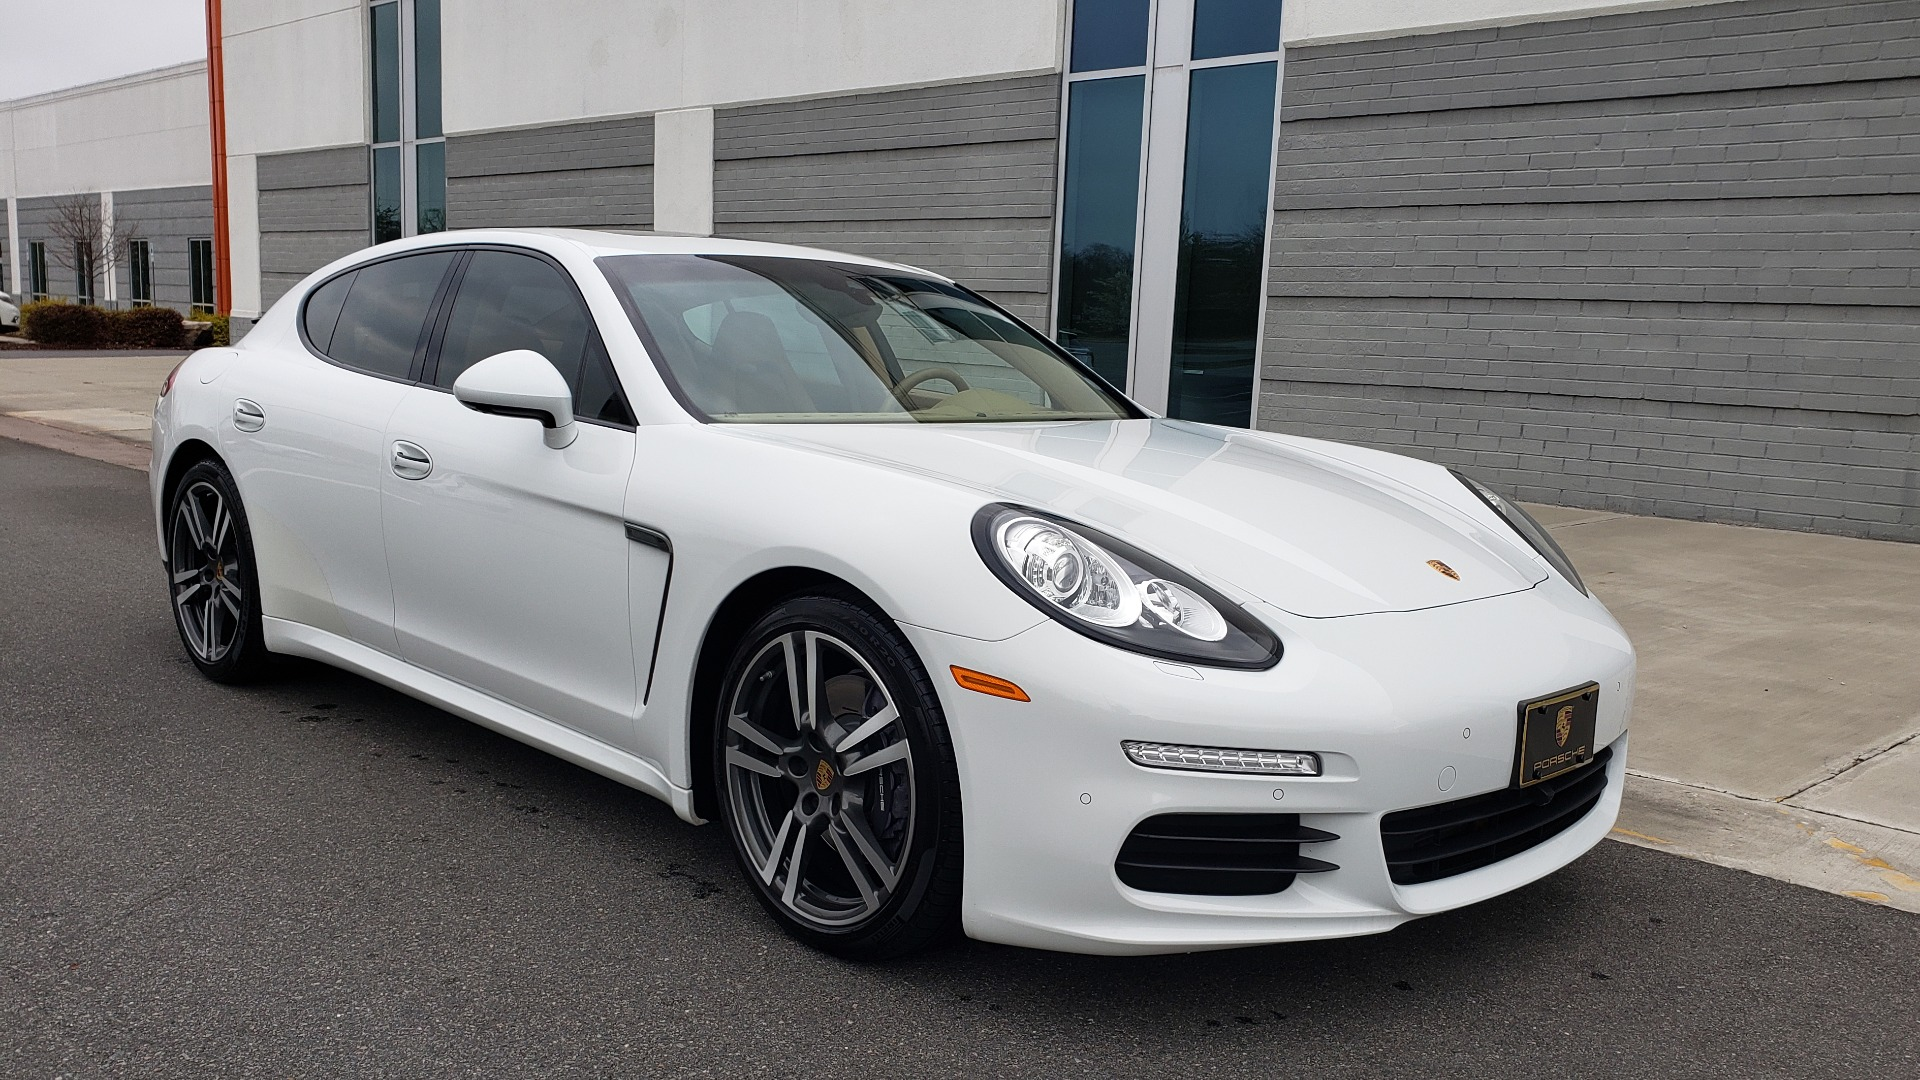 Used 2016 Porsche PANAMERA EDITION / 3.6L V6 / PDK TANS / PREMIUM PKG / LDW / PARK ASSIST for sale Sold at Formula Imports in Charlotte NC 28227 2